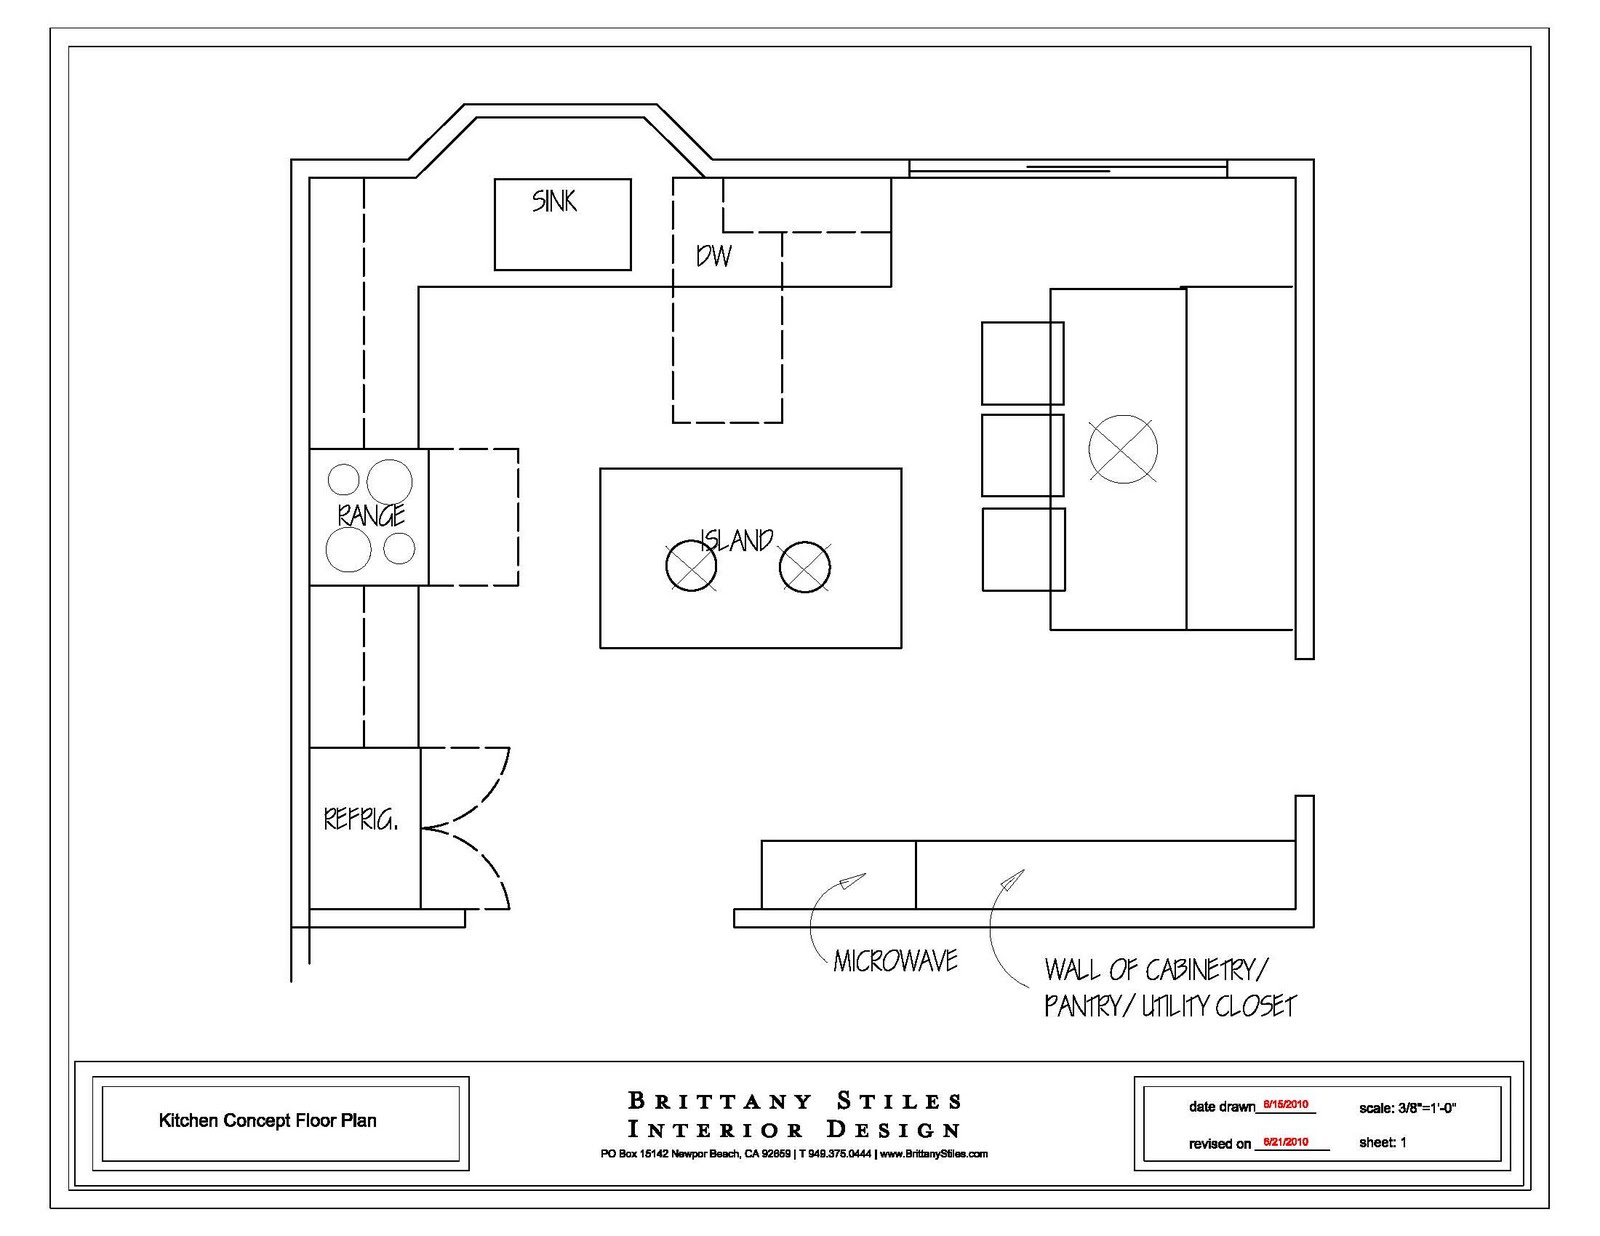 Peninsula kitchen layout decorating ideas for Kitchen floor plan layout